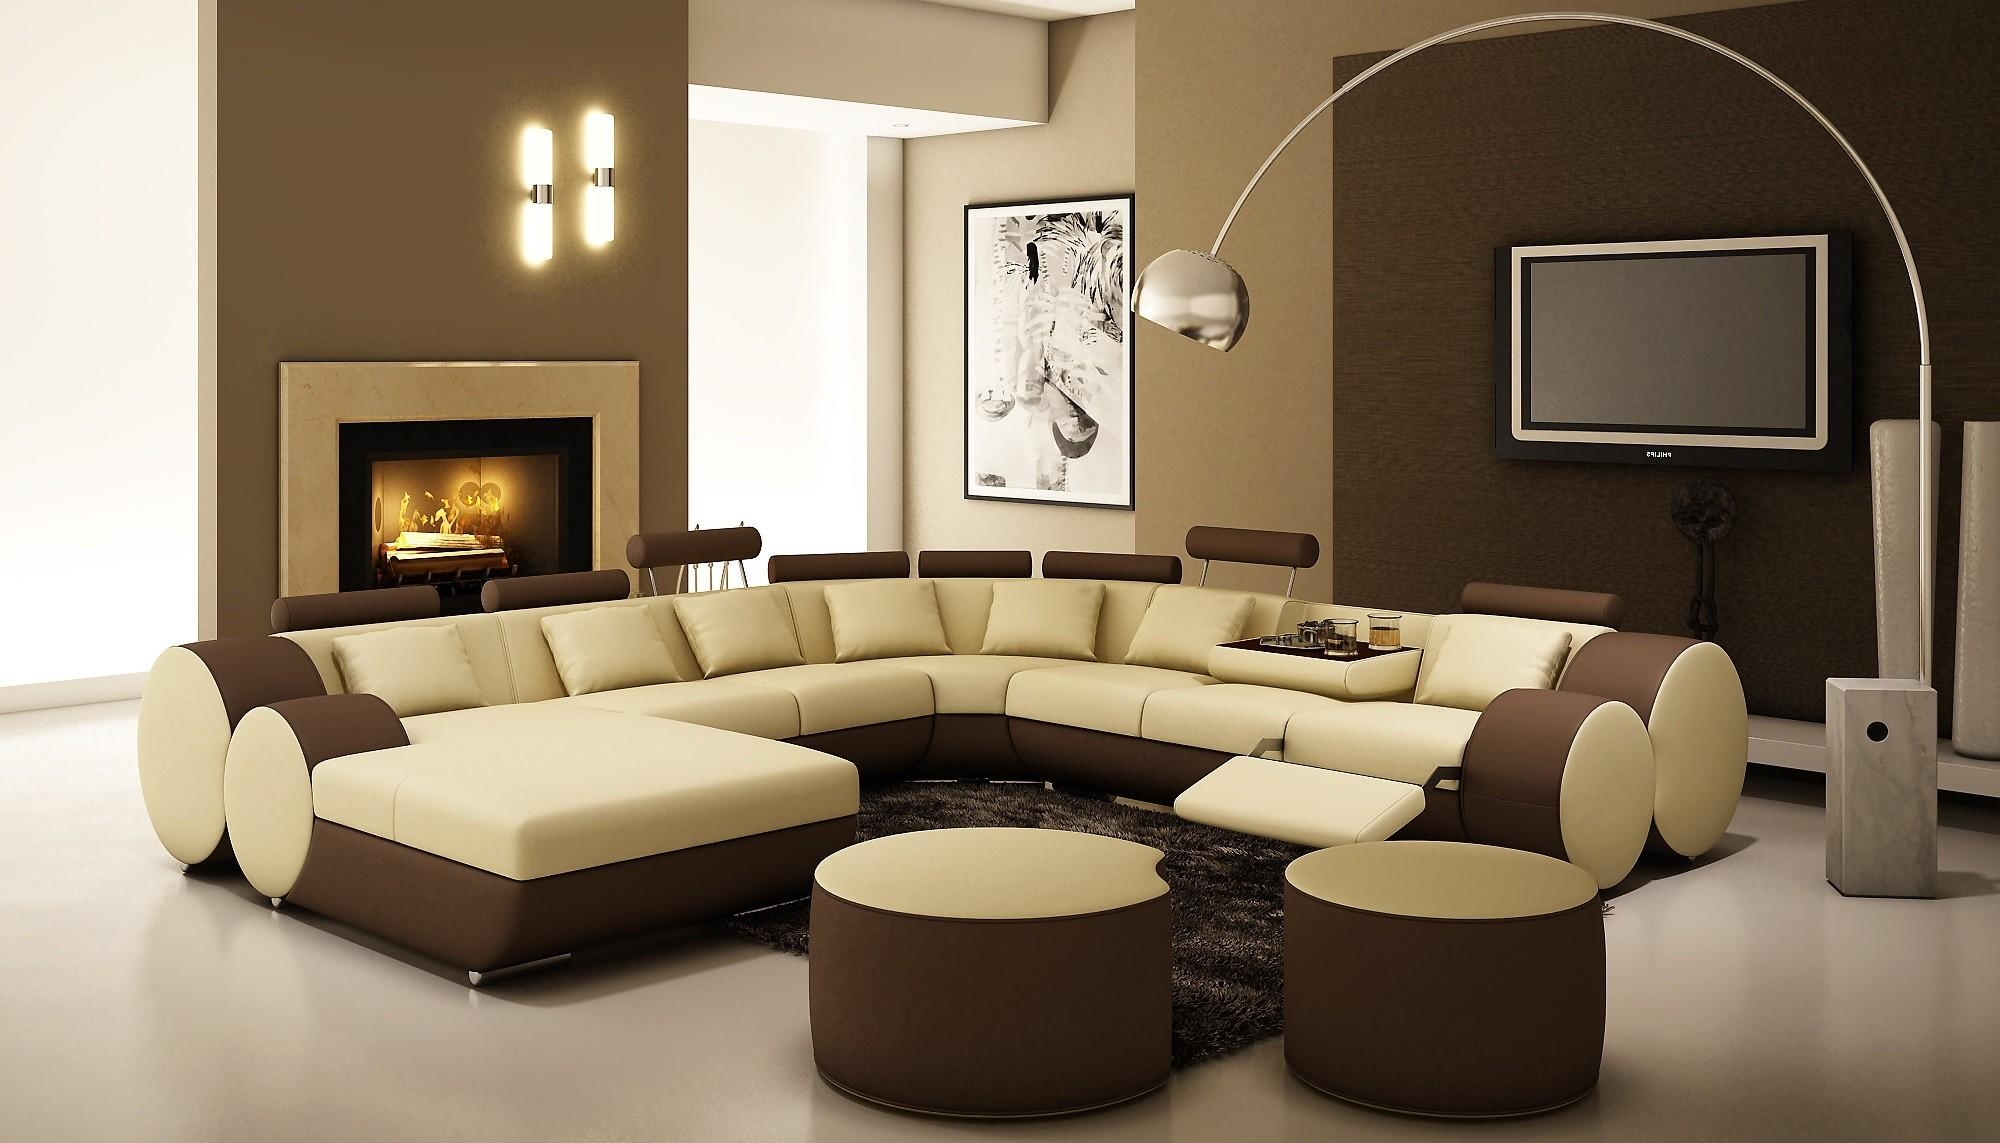 Featured Image of Floor Lamp For Sectional Couch